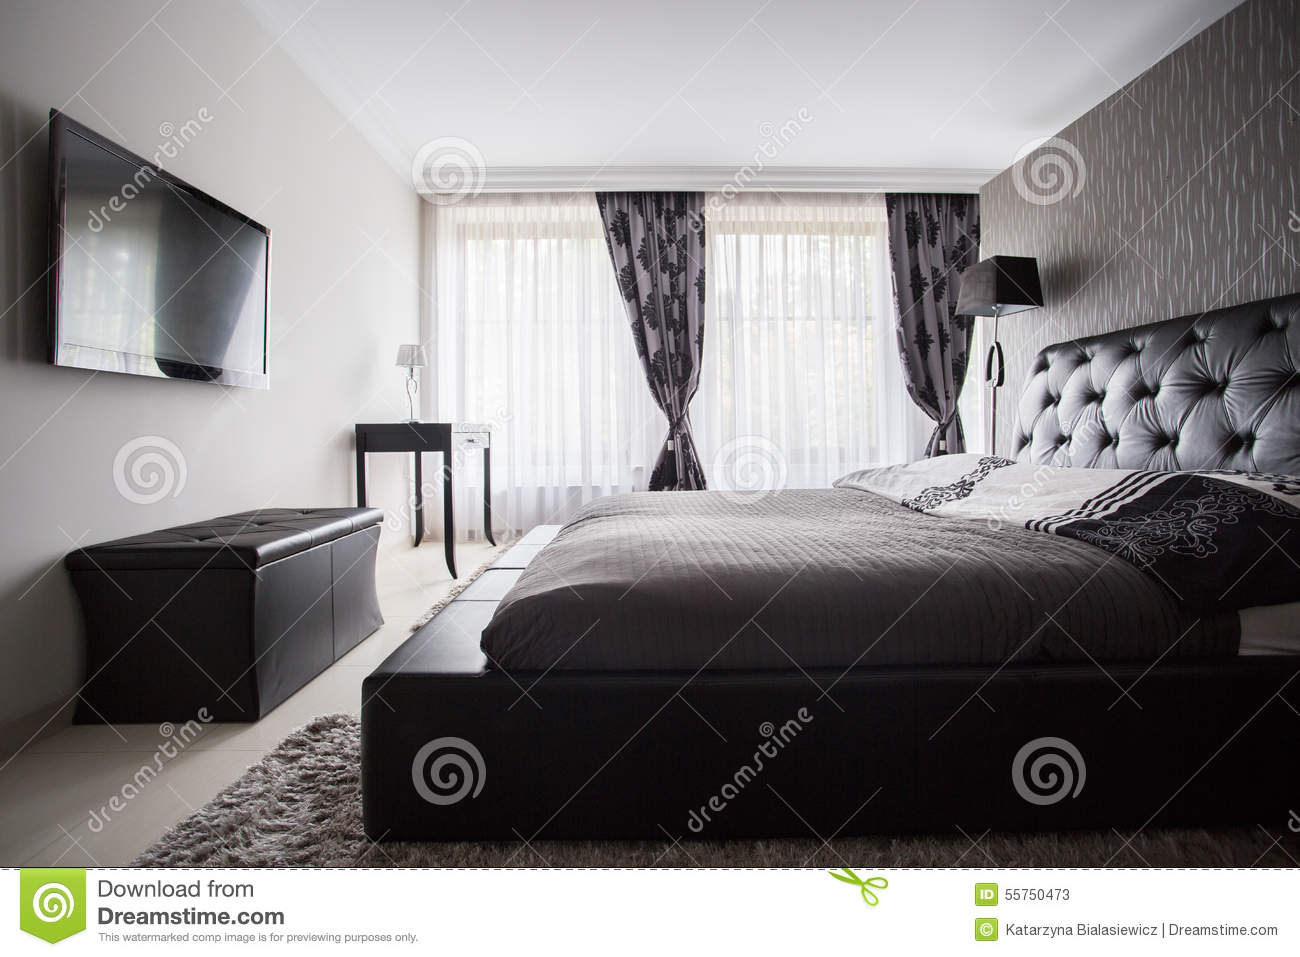 chambre coucher de luxe dans la couleur grise photo stock image 55750473. Black Bedroom Furniture Sets. Home Design Ideas